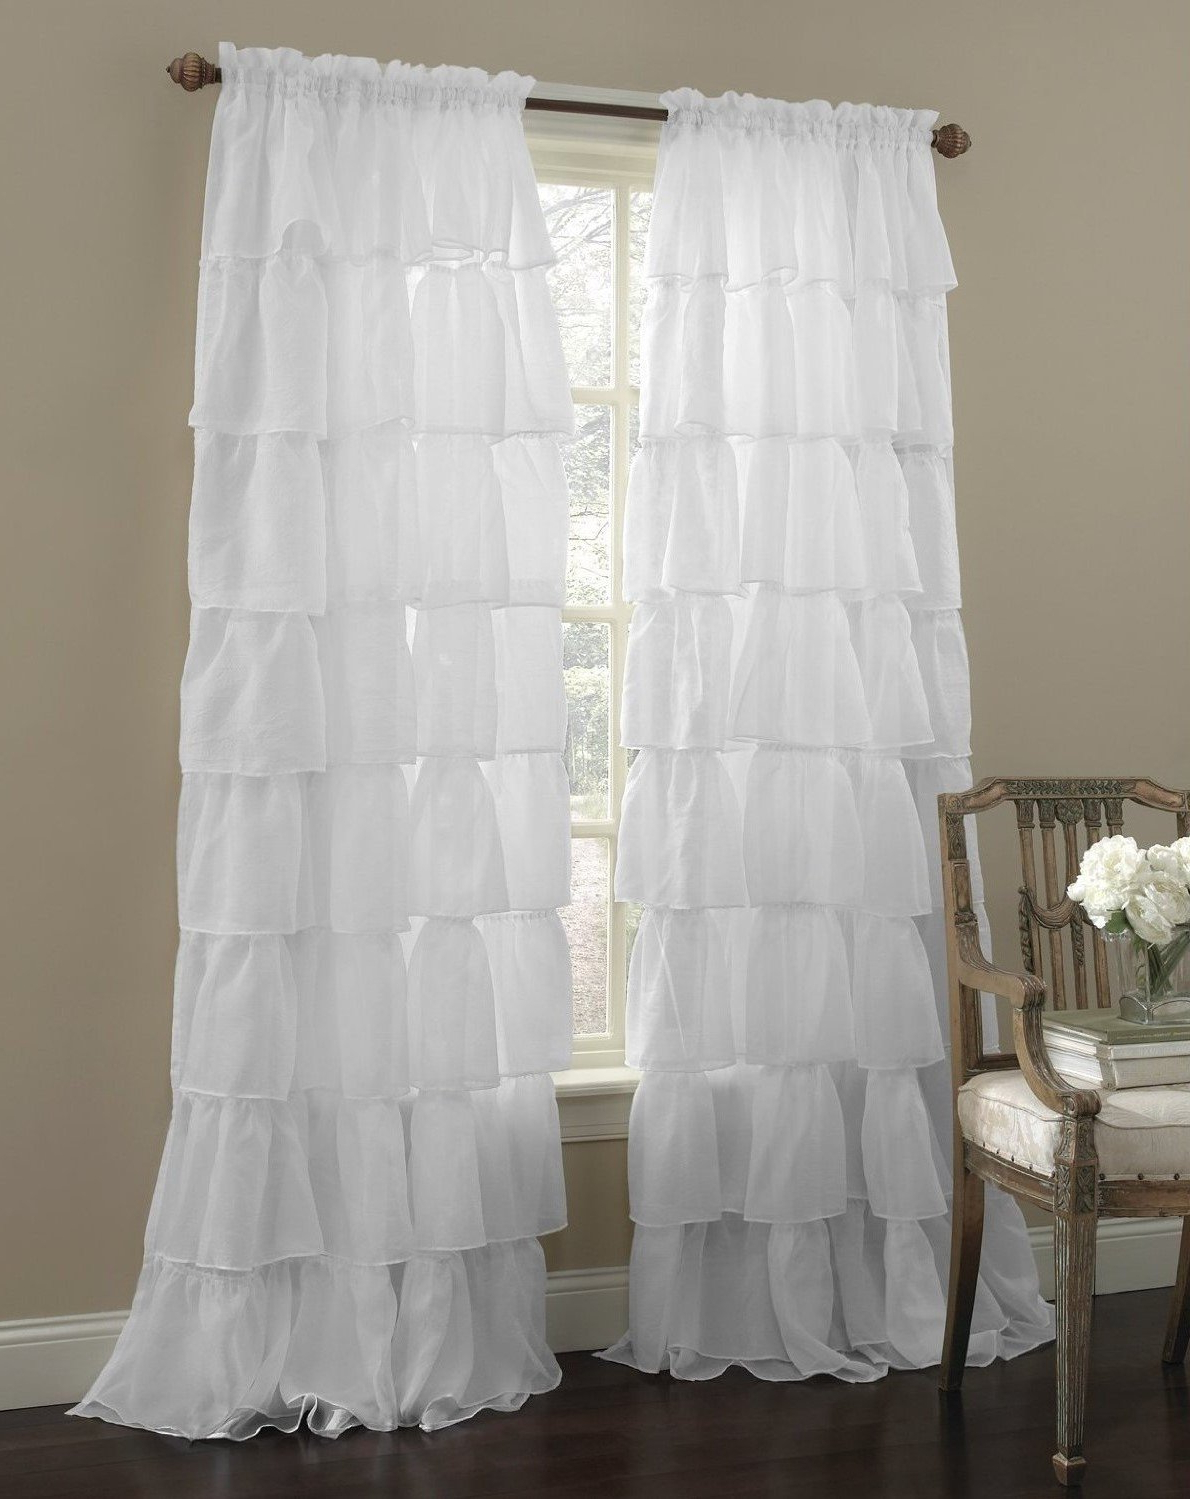 "Well Liked Decotex 2 Piece Gypsy Ruffled Shabby Chic Crushed Voile Sheer Window Curtain Treatment Panel Drapes (white, 55"" X 84"") Within Elegant Crushed Voile Ruffle Window Curtain Pieces (View 3 of 20)"